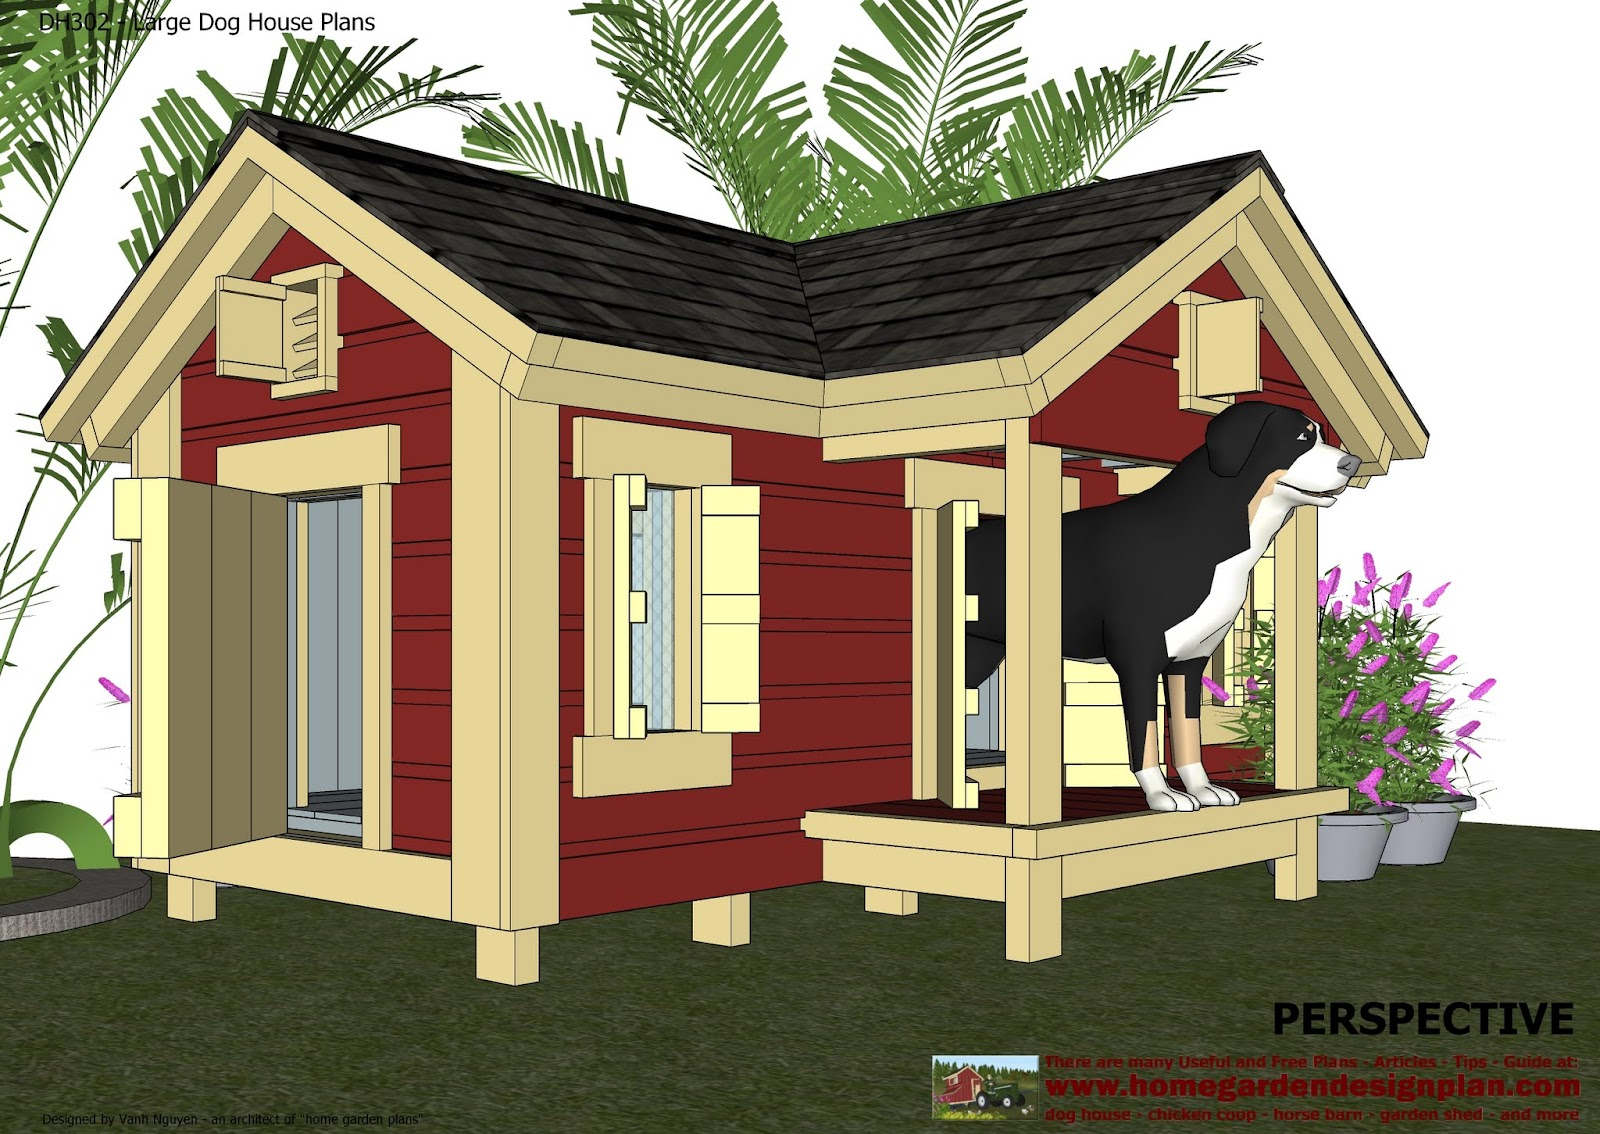 Home garden plans dh302 insulated dog house plans for House building blueprints